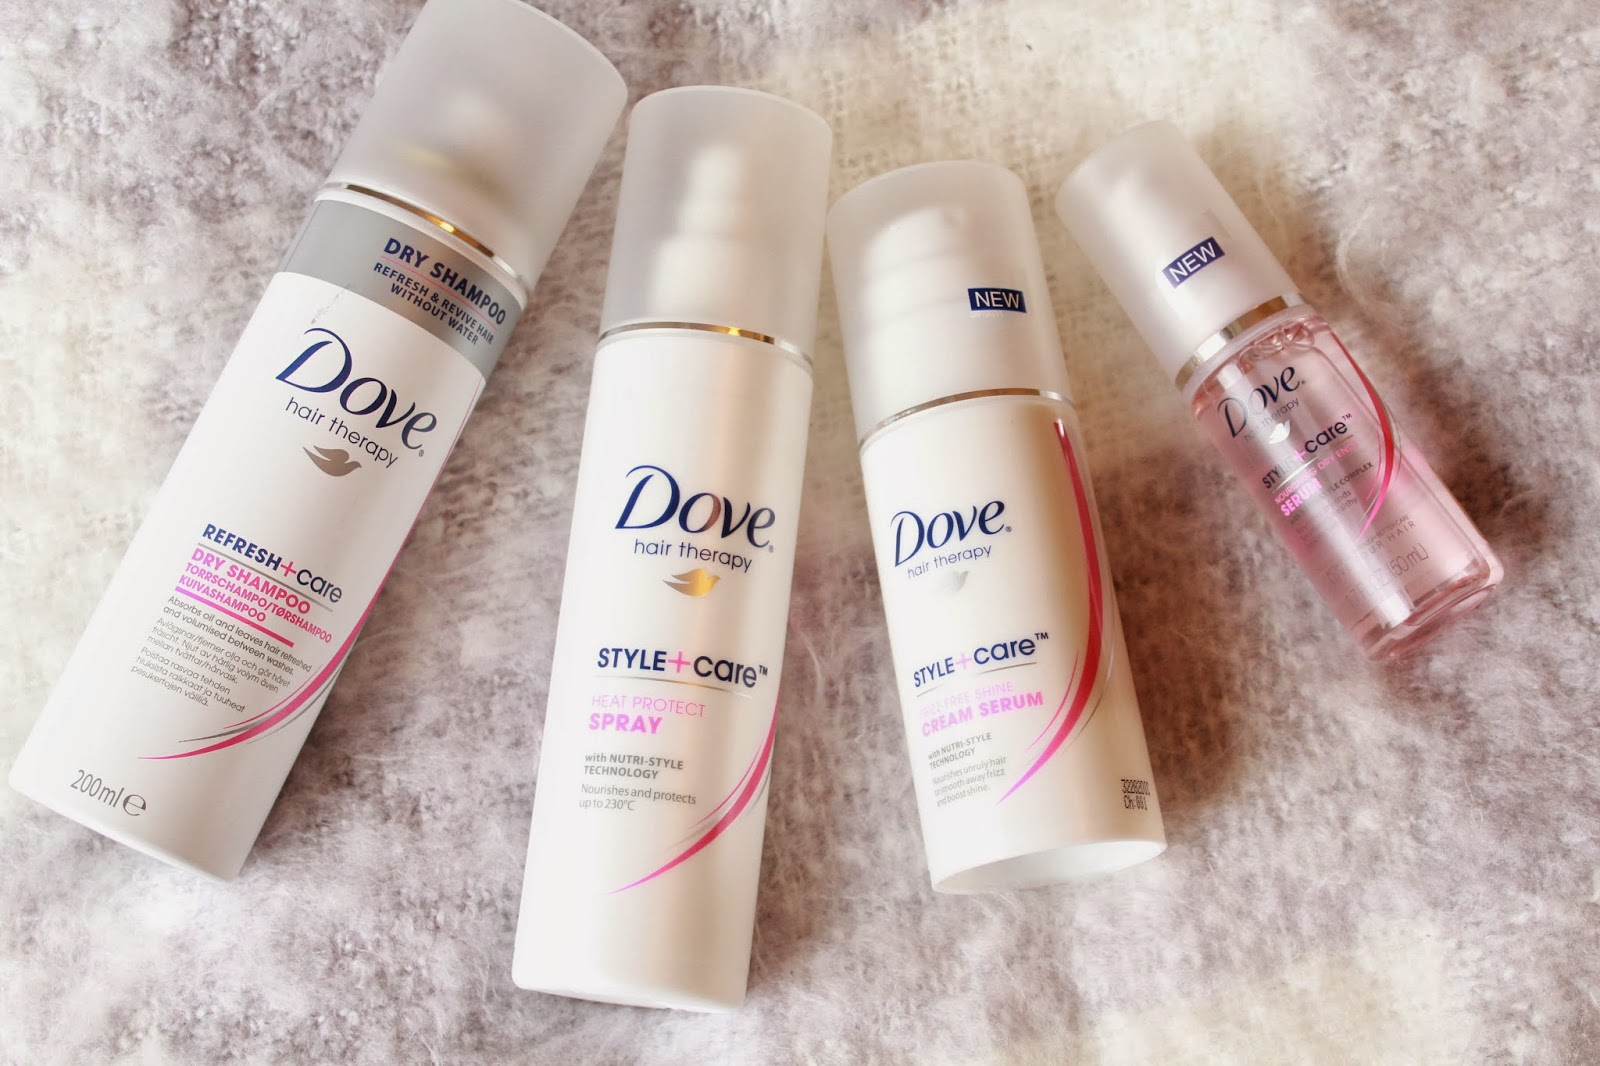 Dove Hair Therapy Range